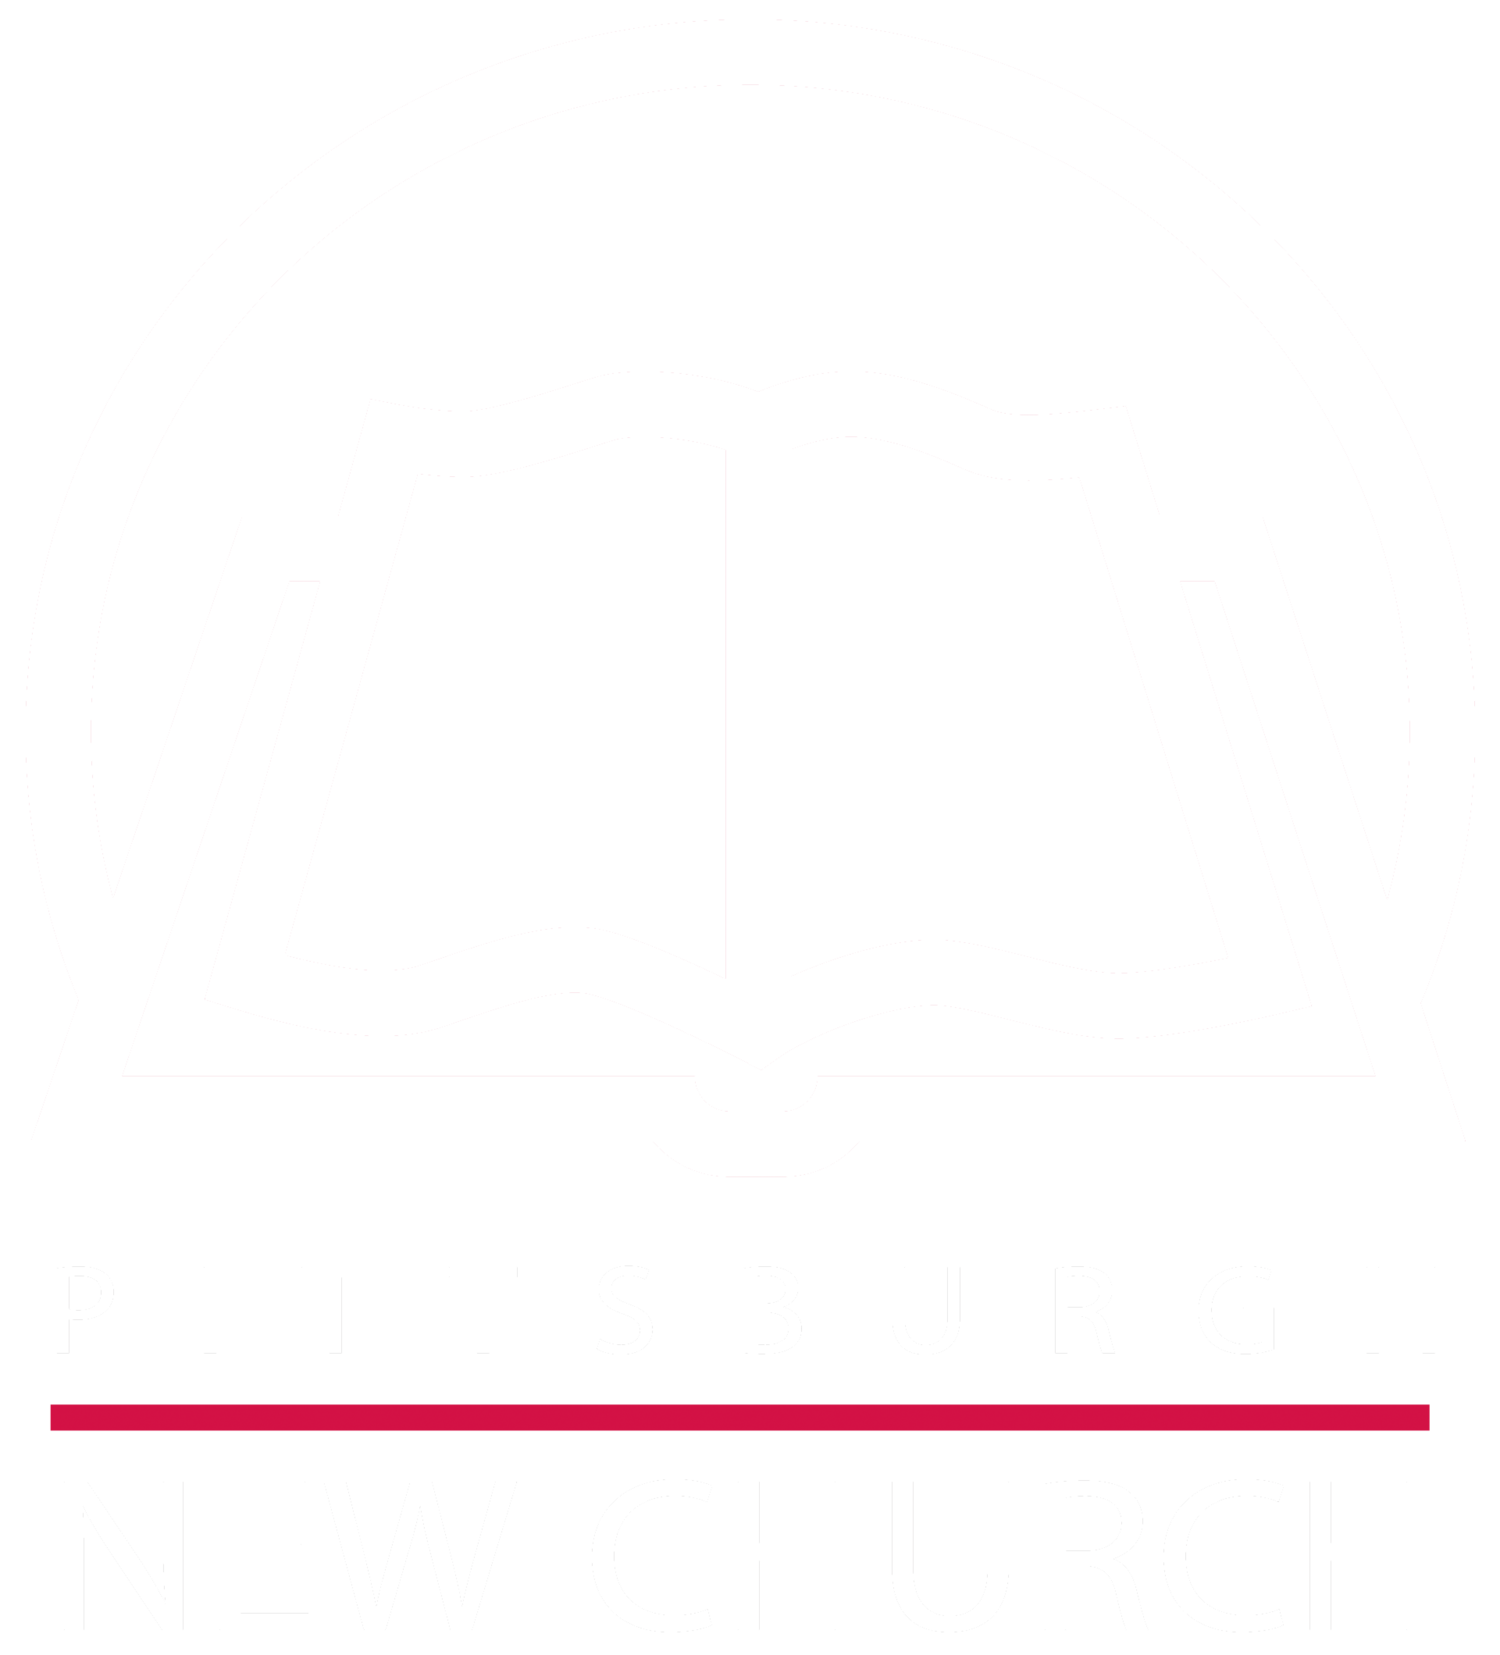 Pittsburgh New Church